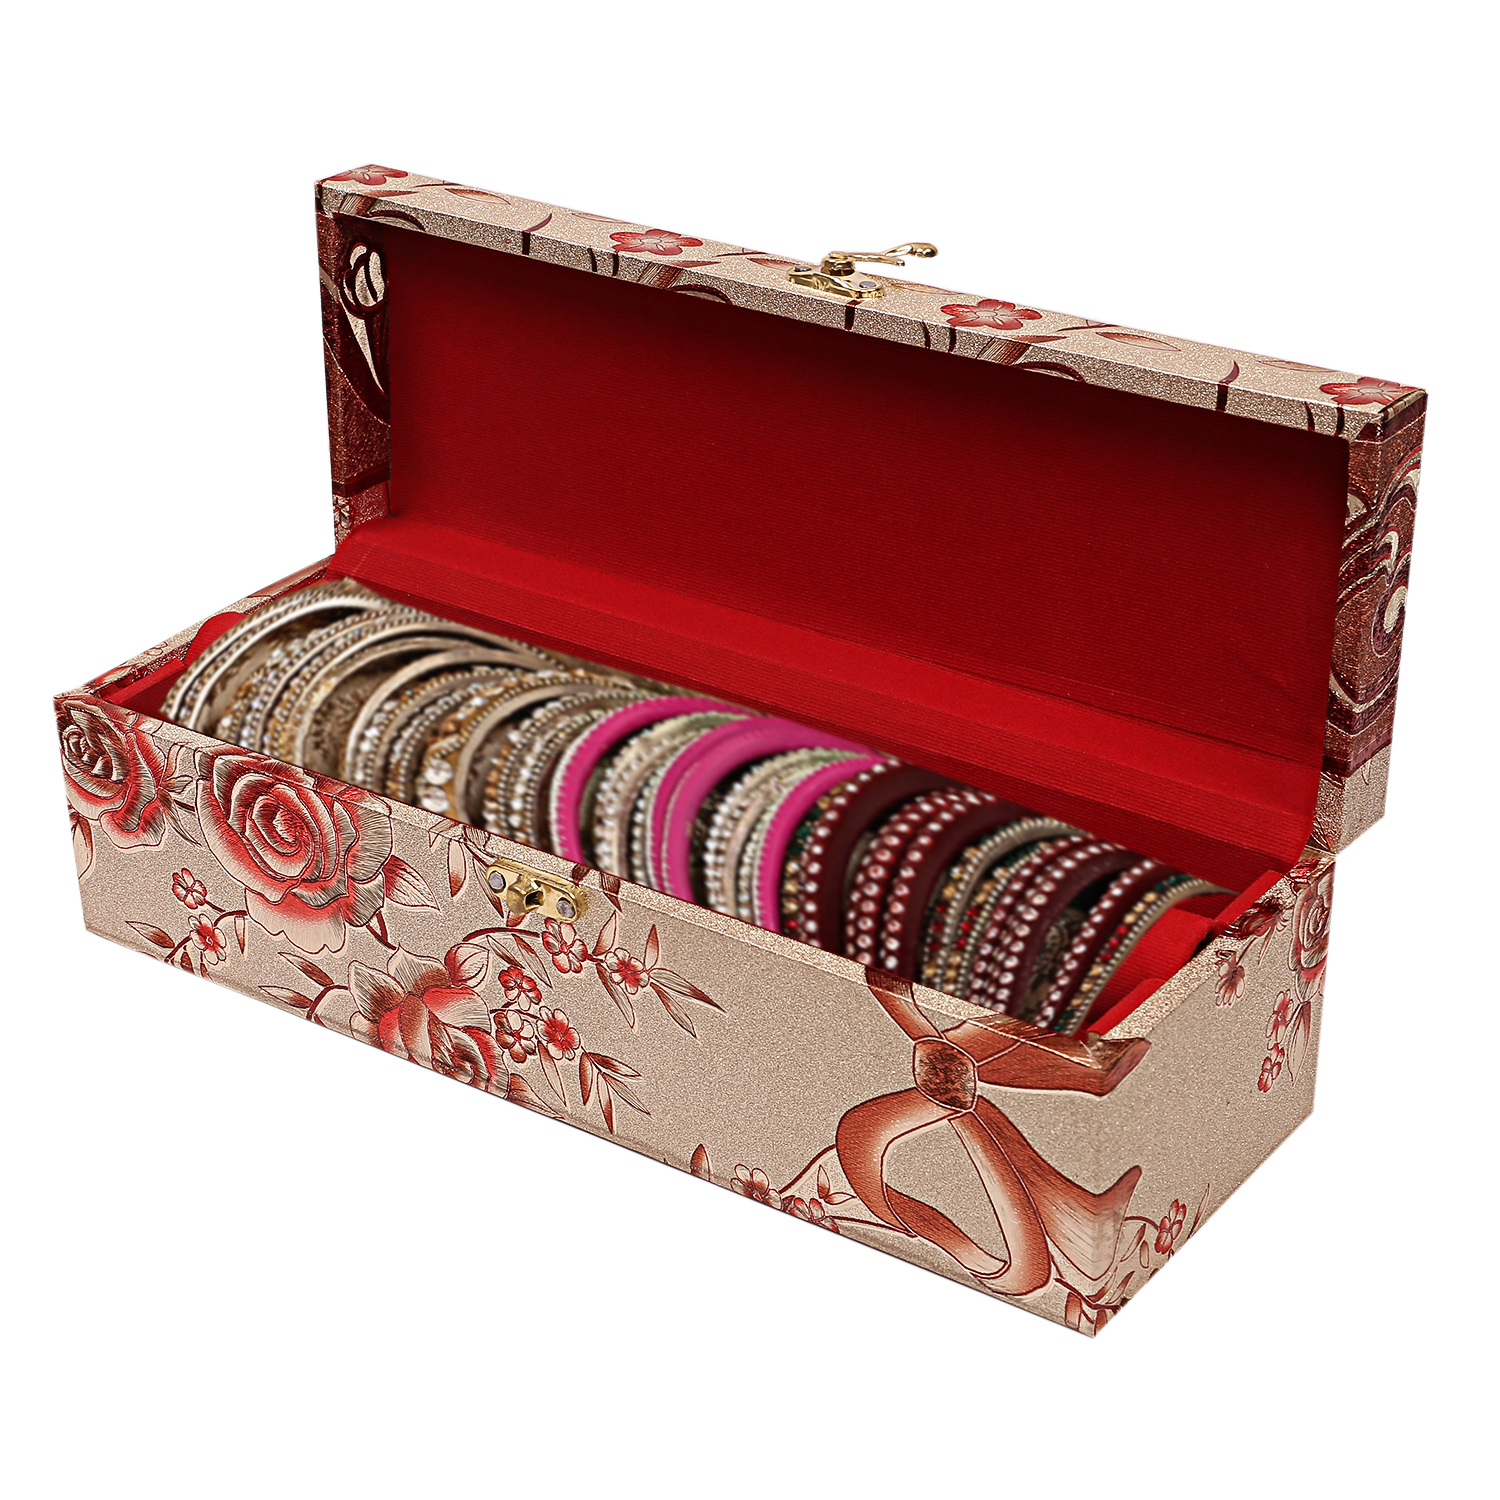 Kuber Industries Wooden 1 Piece One Rod Bangle Storage Box with Lock System (Gold) -CTKTC6860